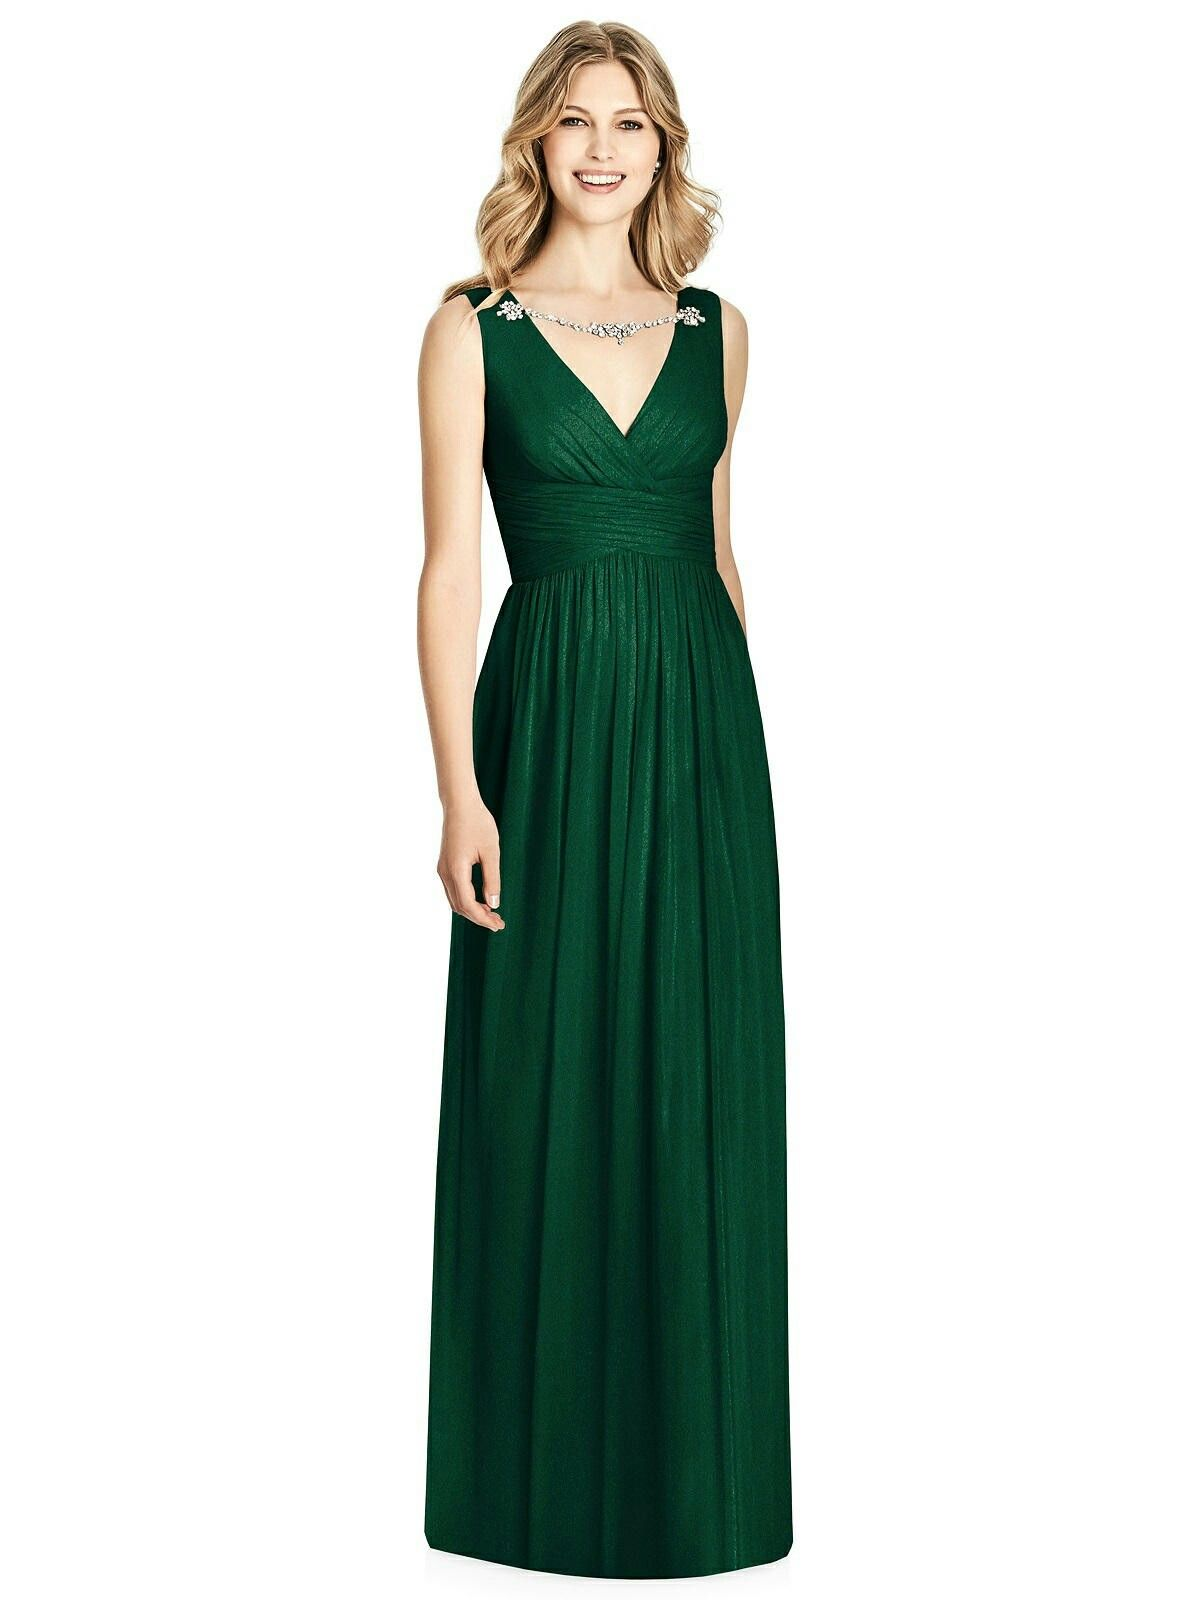 Fashion week Green Hunter dessy bridesmaid dresses pictures for woman